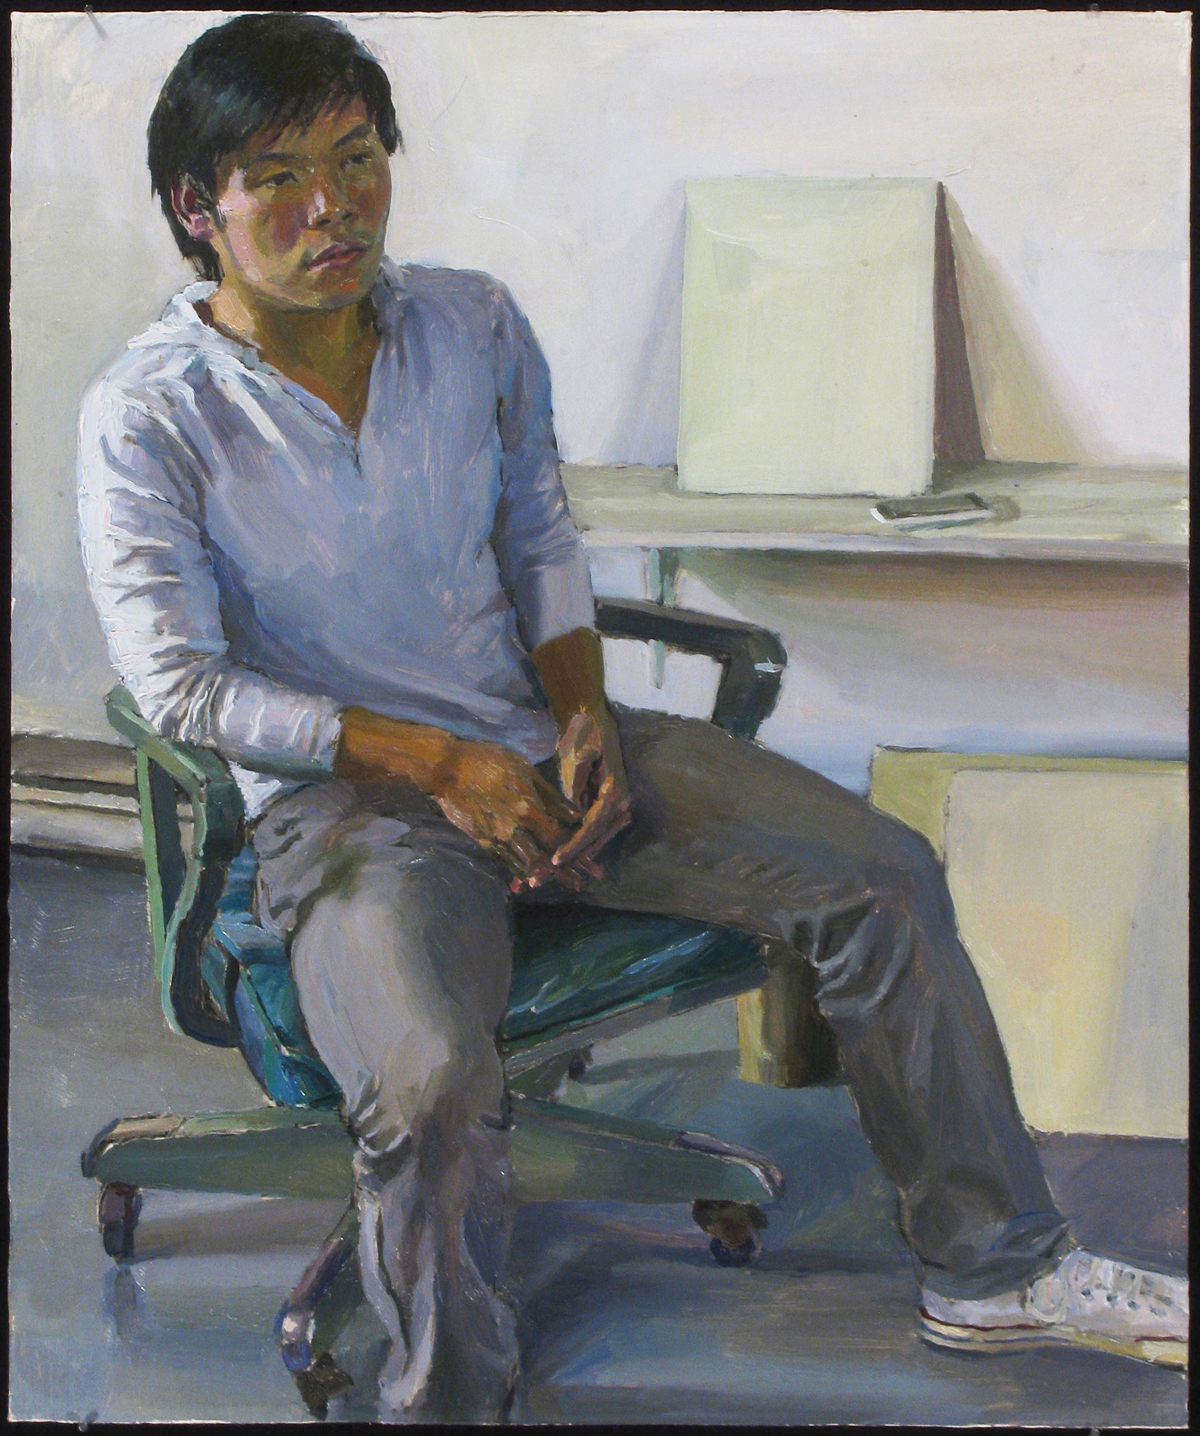 "THOMAS LAM oil on panel 14 x 12"" 2012"